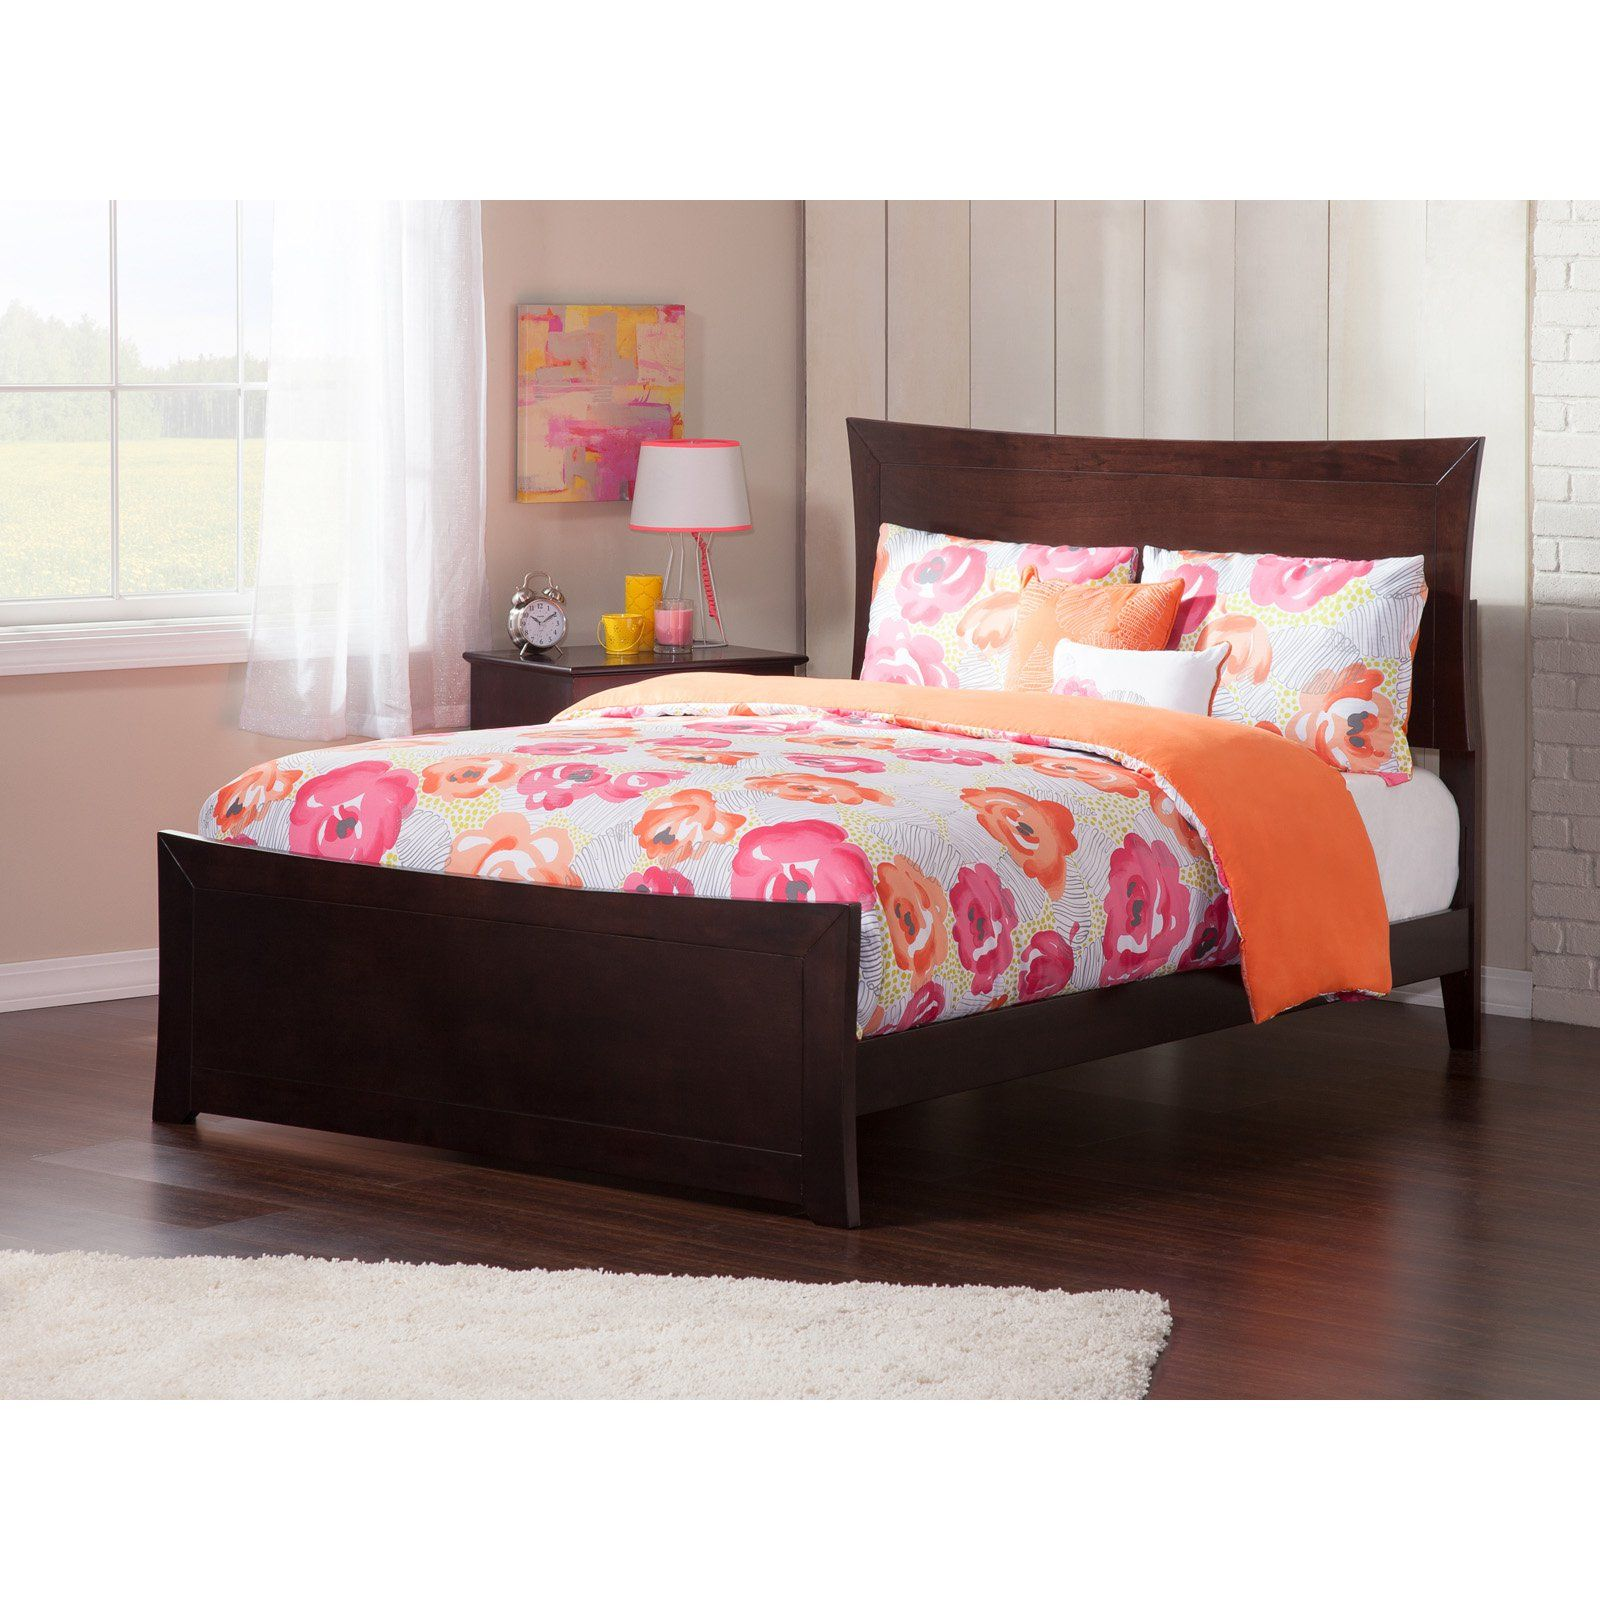 Atlantic Furniture Metro Bed With Matching Foot Board And Optional